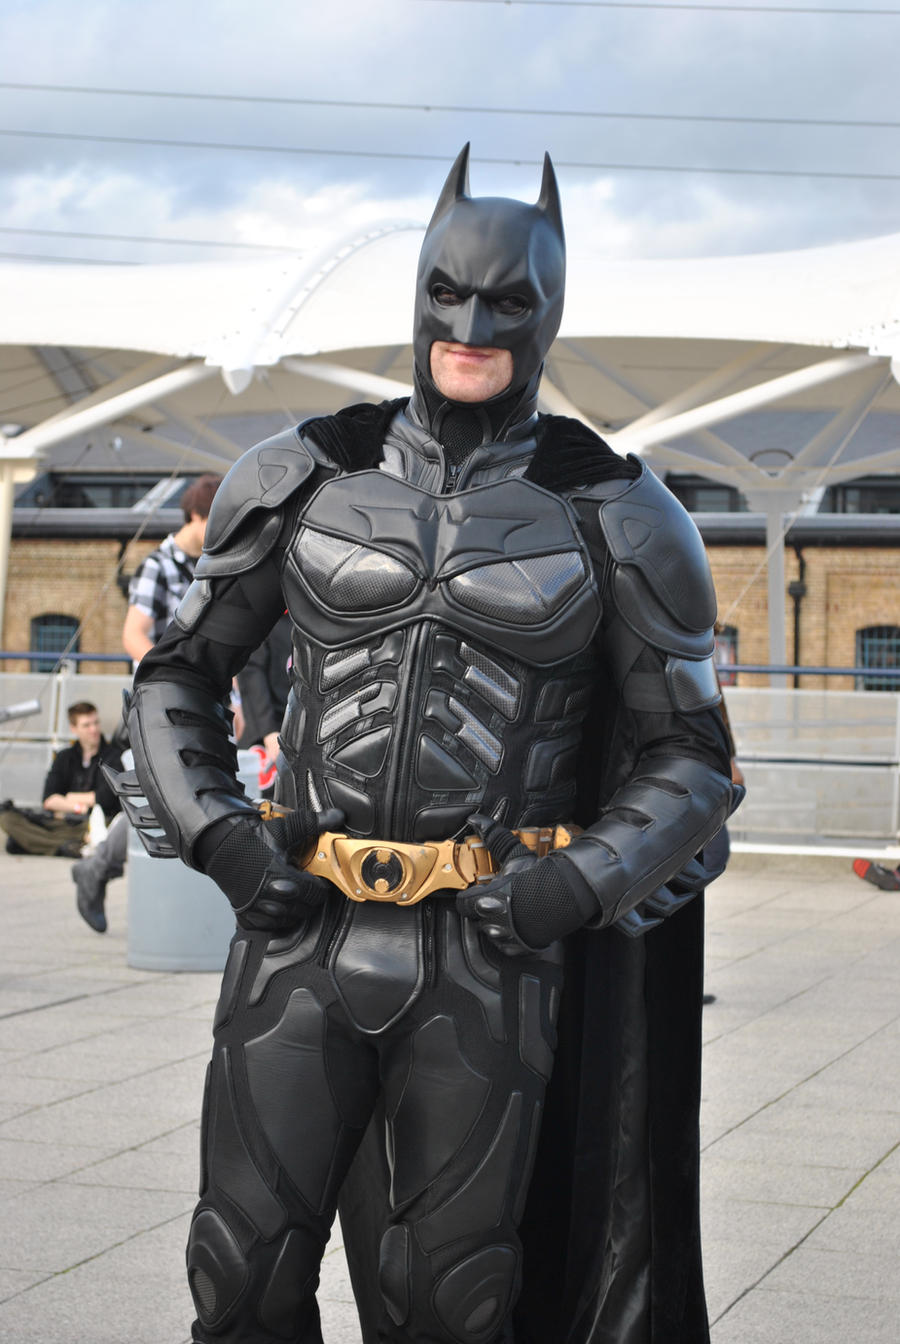 Best Motorcycle Armor >> Batman cosplay by Regretable-Sweetness on DeviantArt